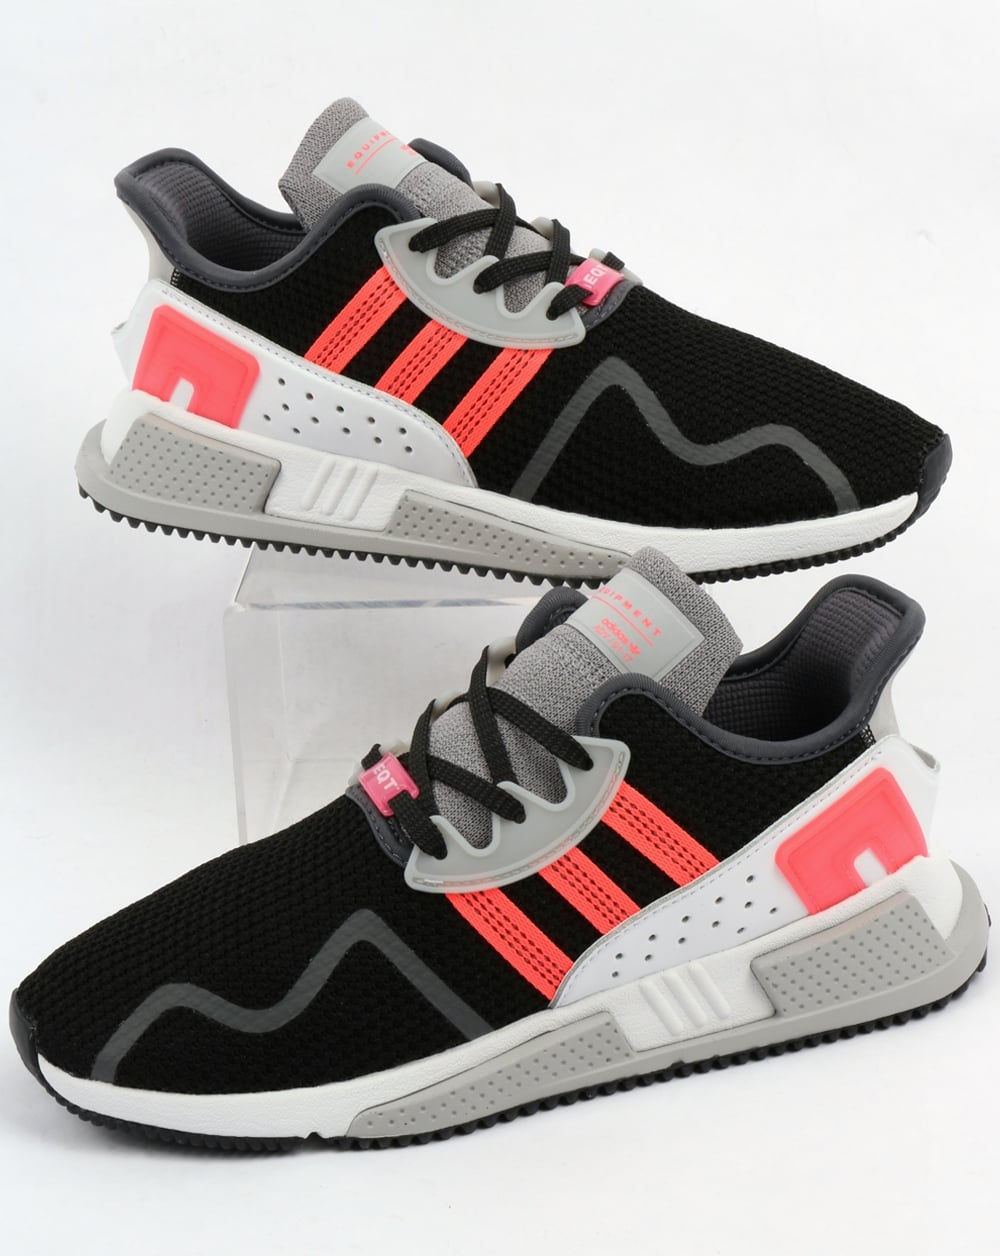 buy popular 0d79b 3dde7 adidas Trainers Adidas EQT Cushion Adv Trainers BlackPinkWhite